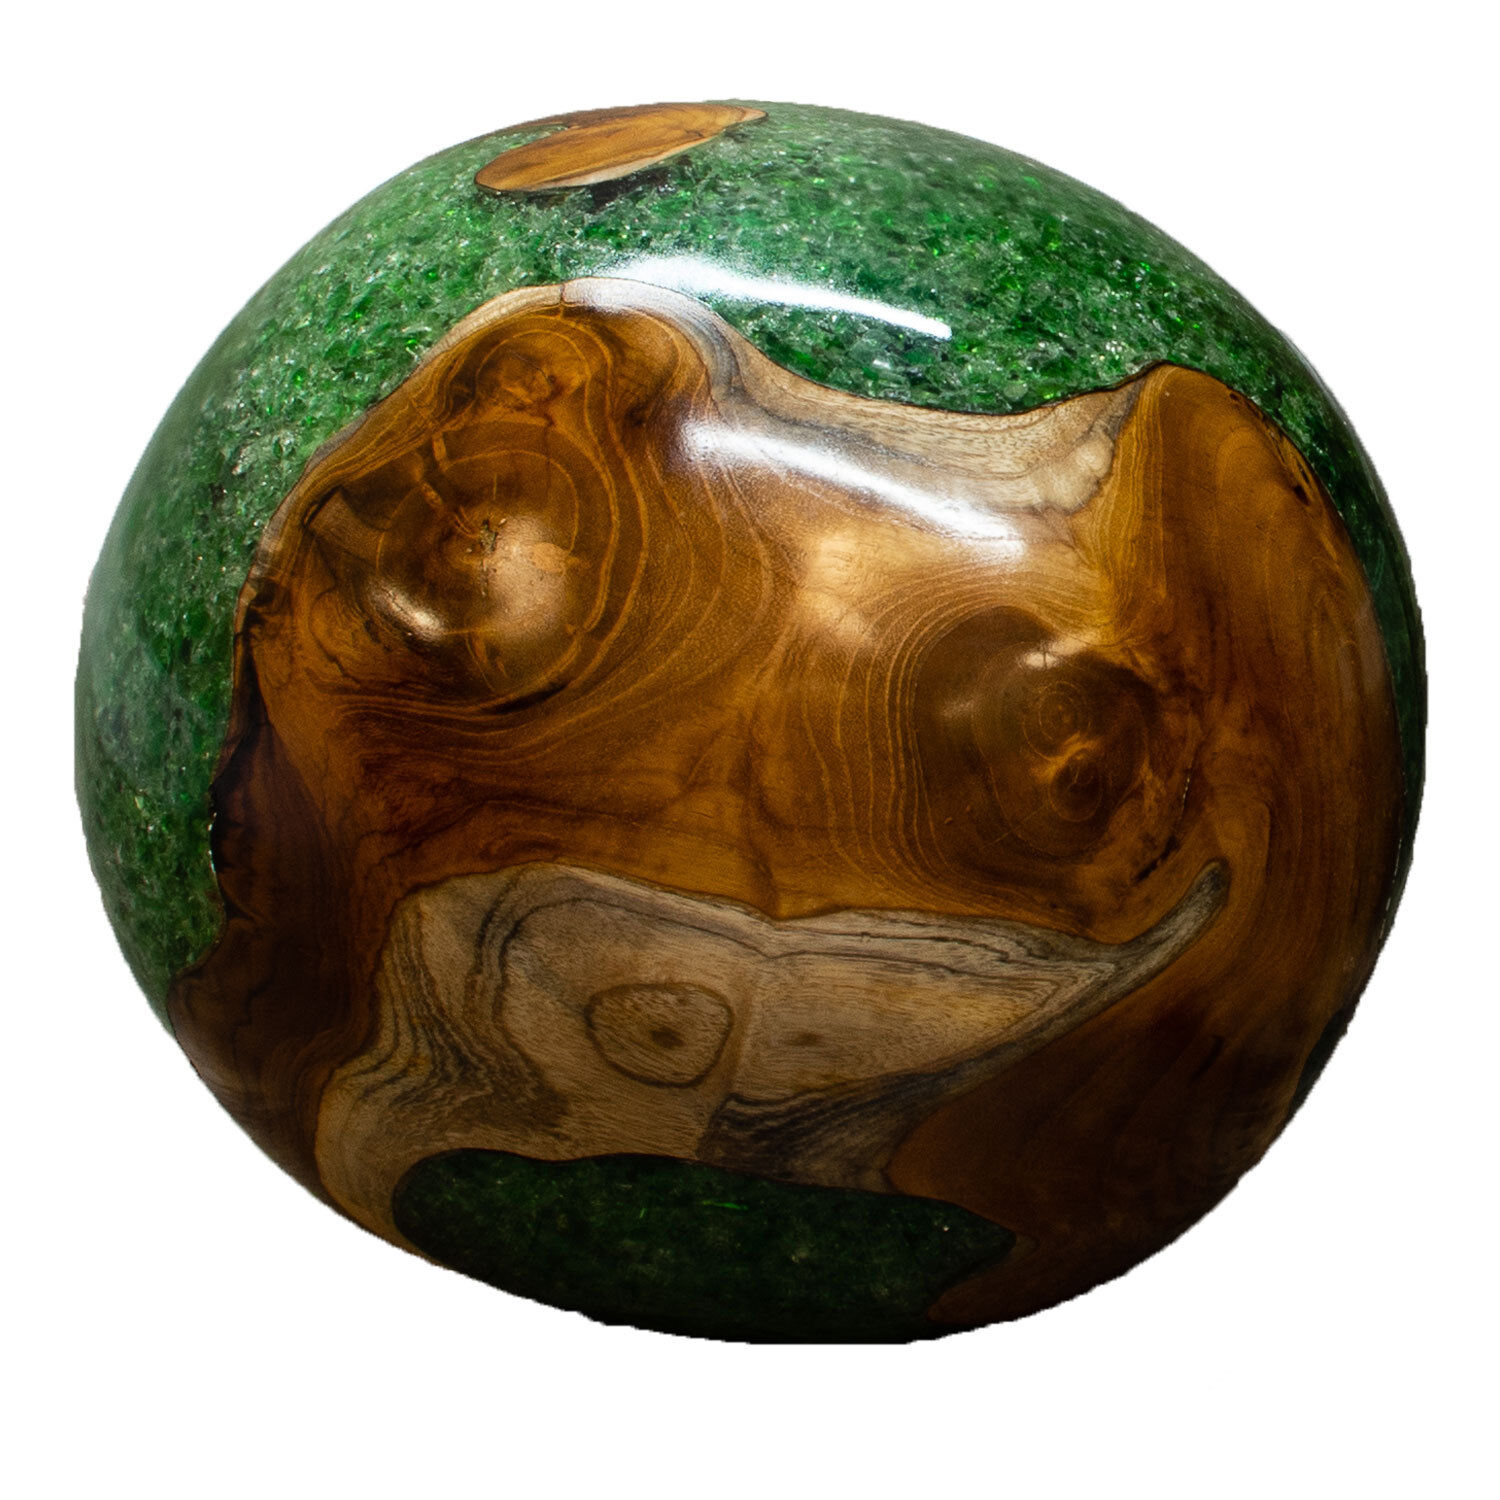 Teak Wood and Grün Resin Lucite 11 Inch Ball Wood Wood Wood Rare Accent BLR23G-06 e993fb